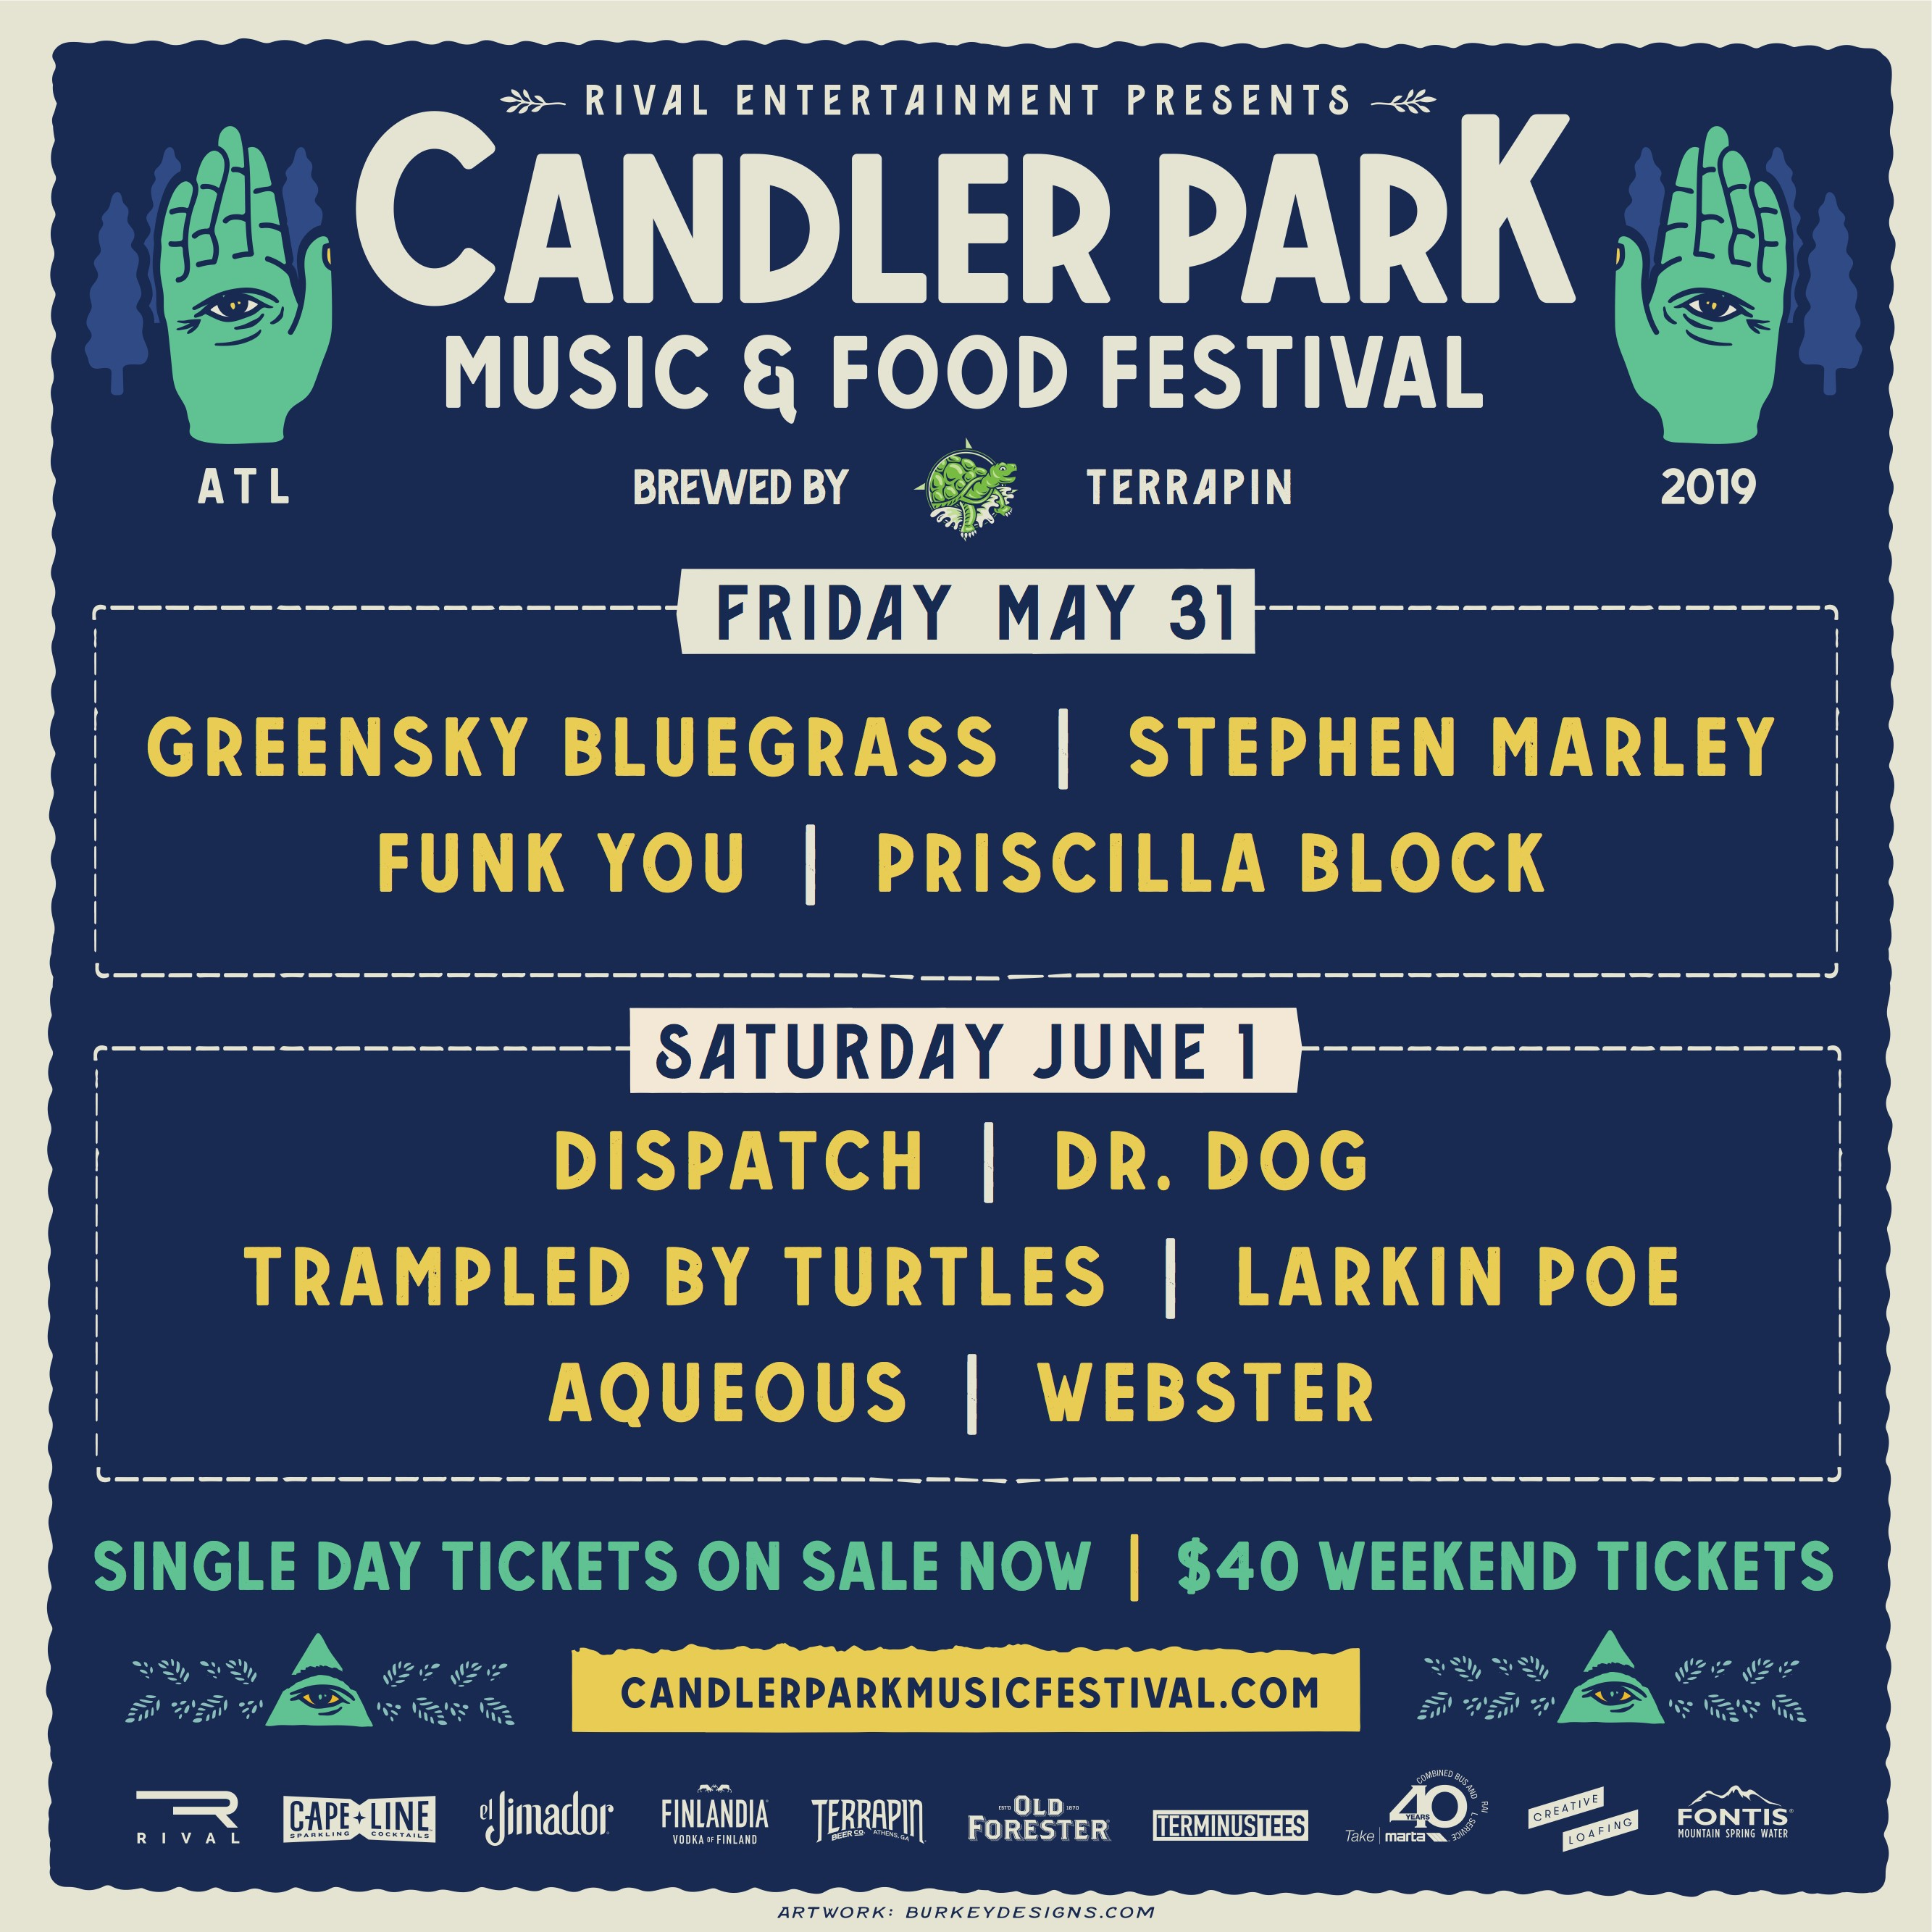 Candler Park Music & Food Festival Announces 2019 Lineup